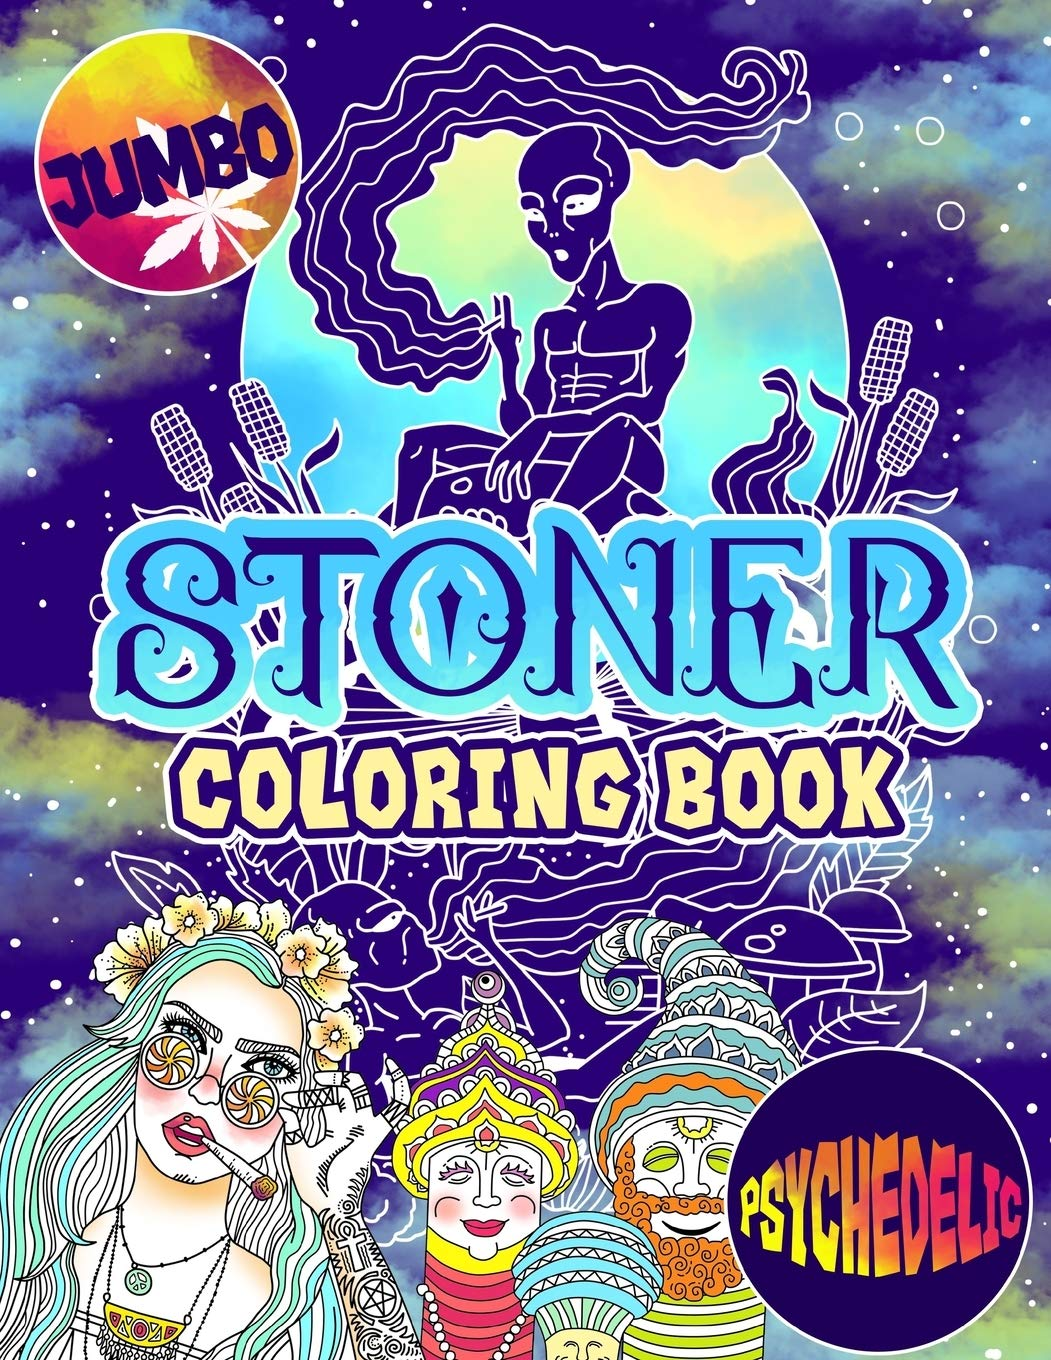 - Amazon.com: Stoner Coloring Book: The Stoner's Psychedelic